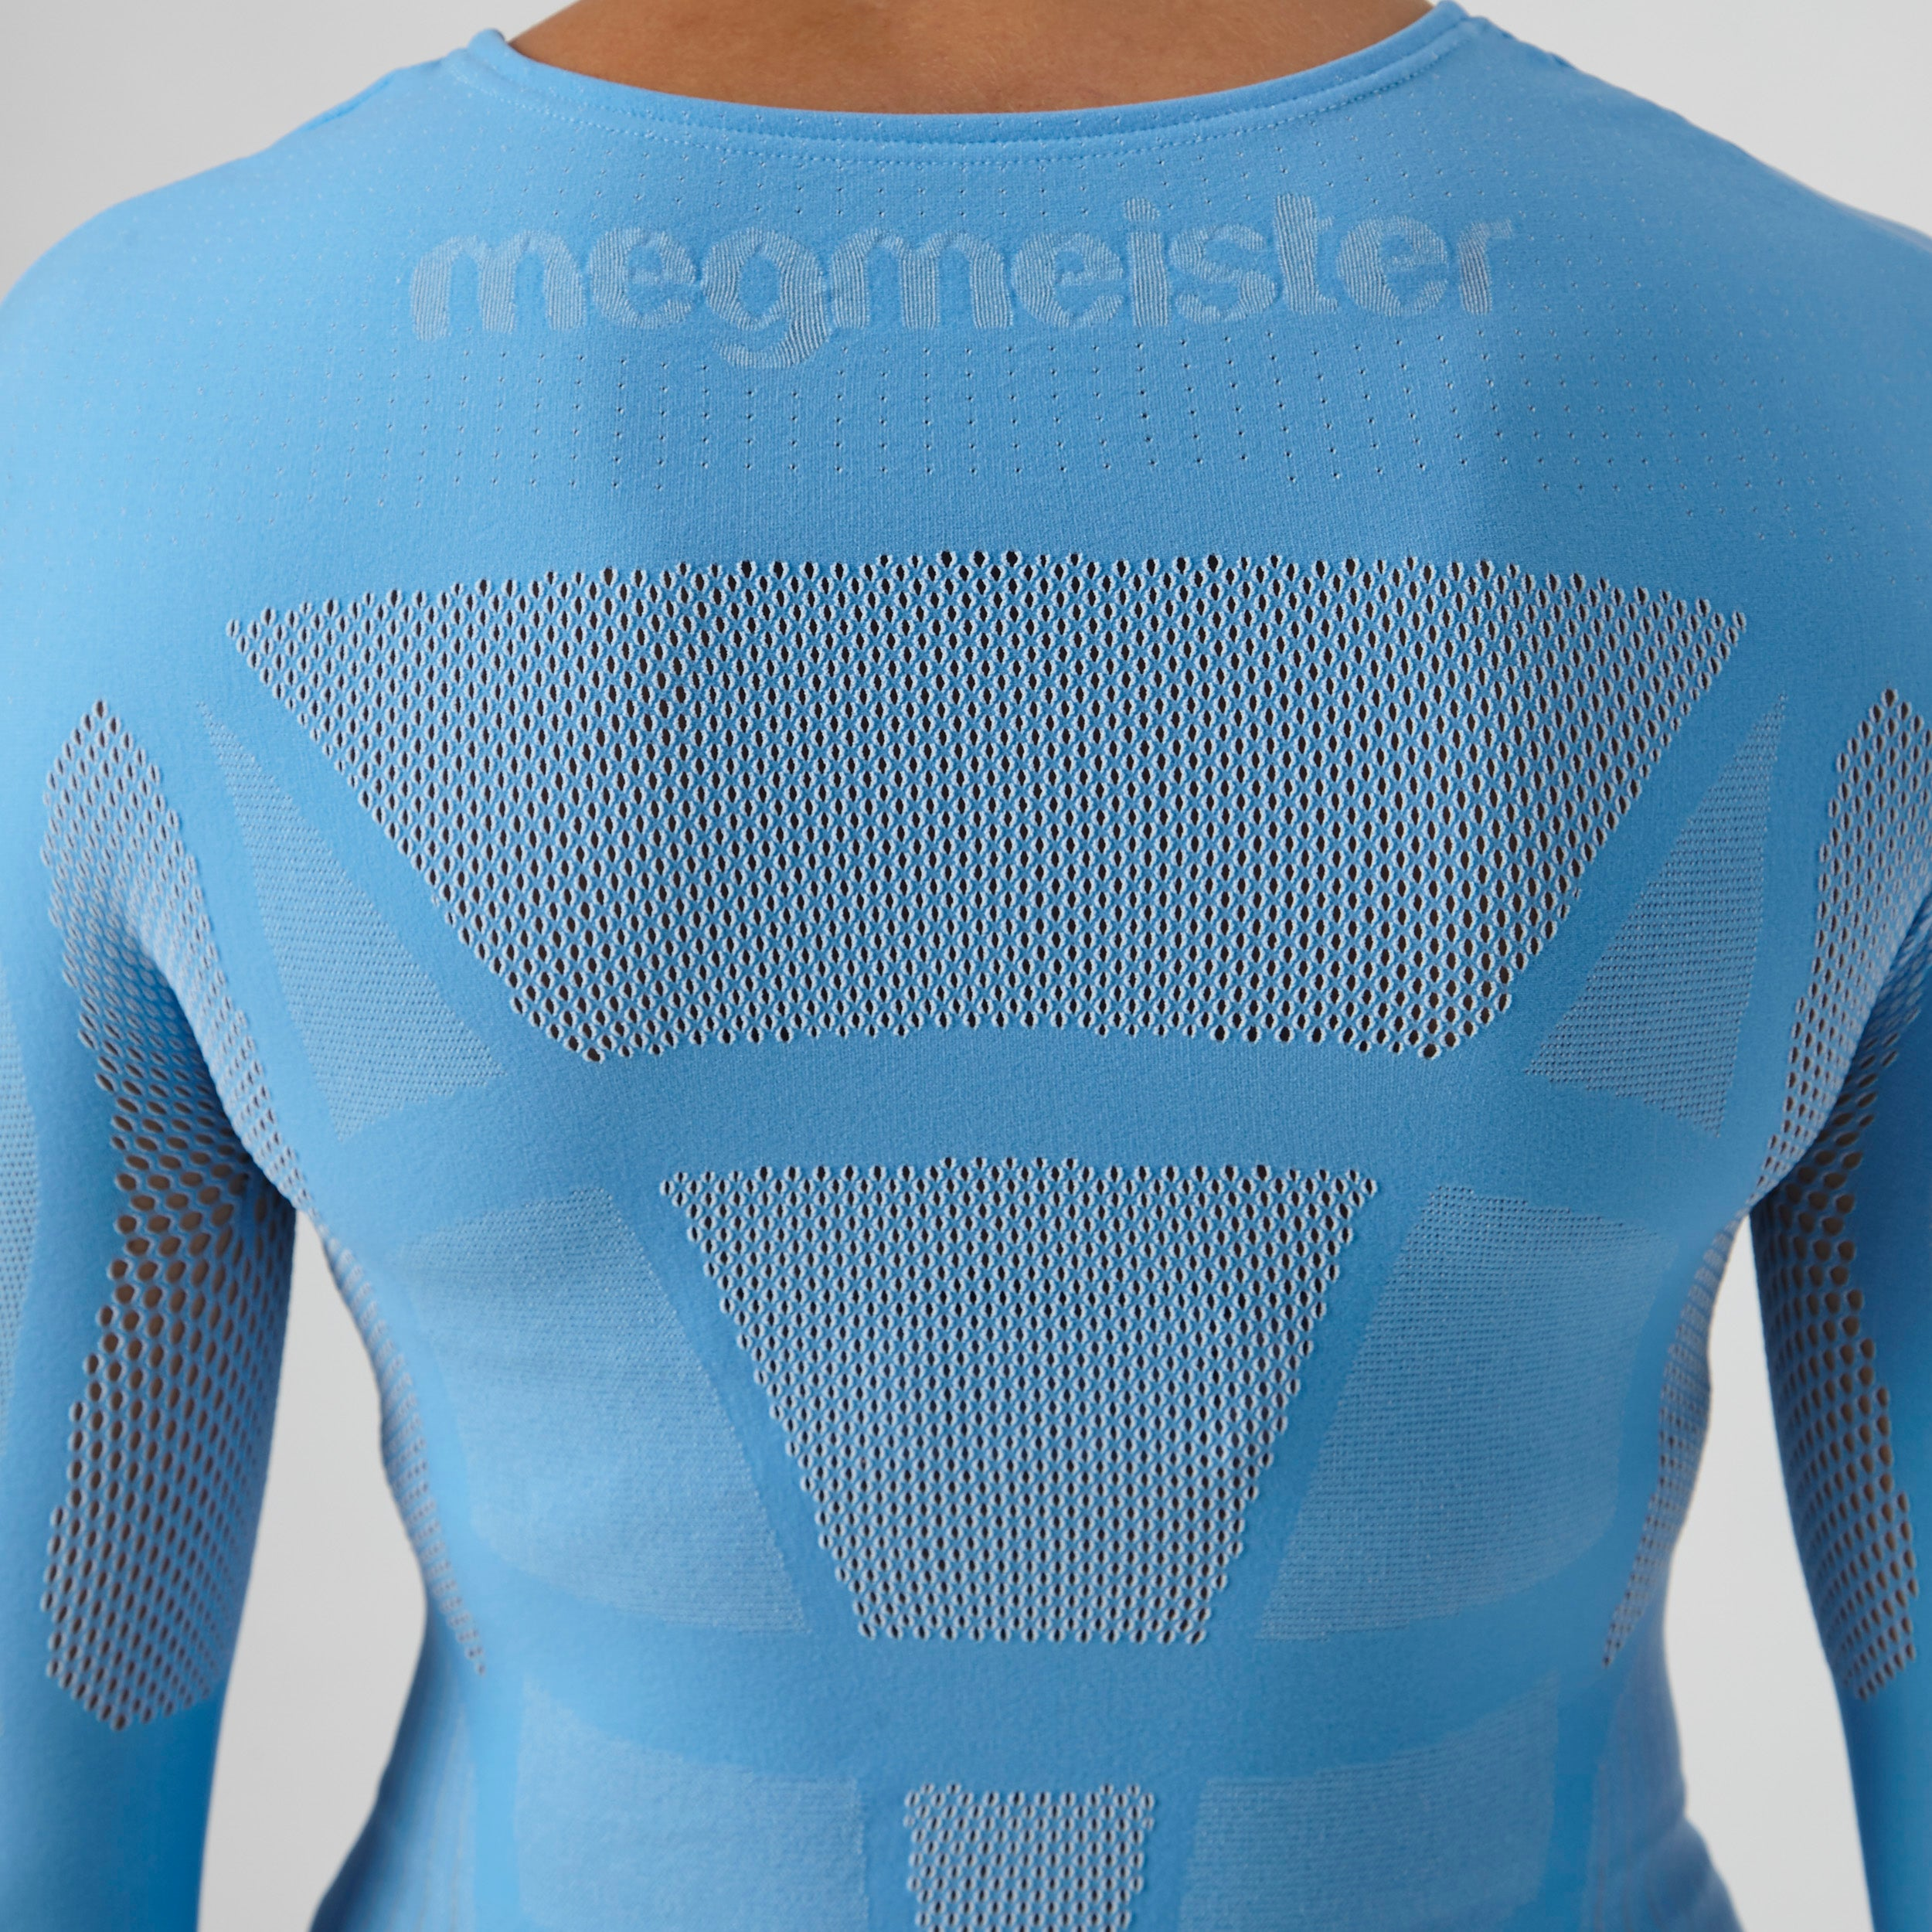 Women's DRYNAMO Winter Cycle Long Sleeve Base Layer